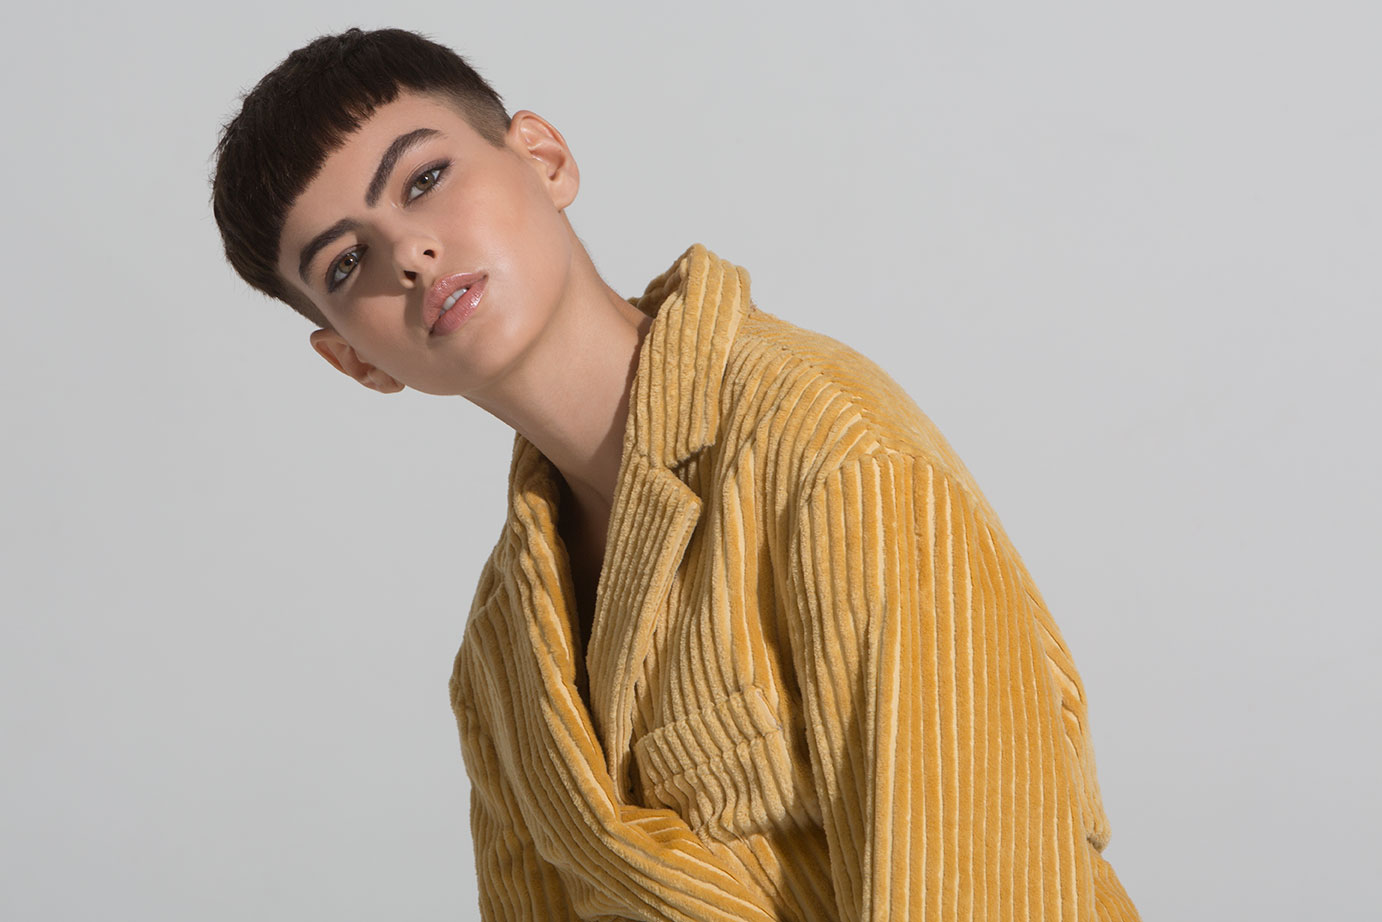 New York fashion photographer Eric Hason photographs model Hayden Graye from State Management wearing a gold corduroy jacket by Land of Distraction for Basic Magazine.